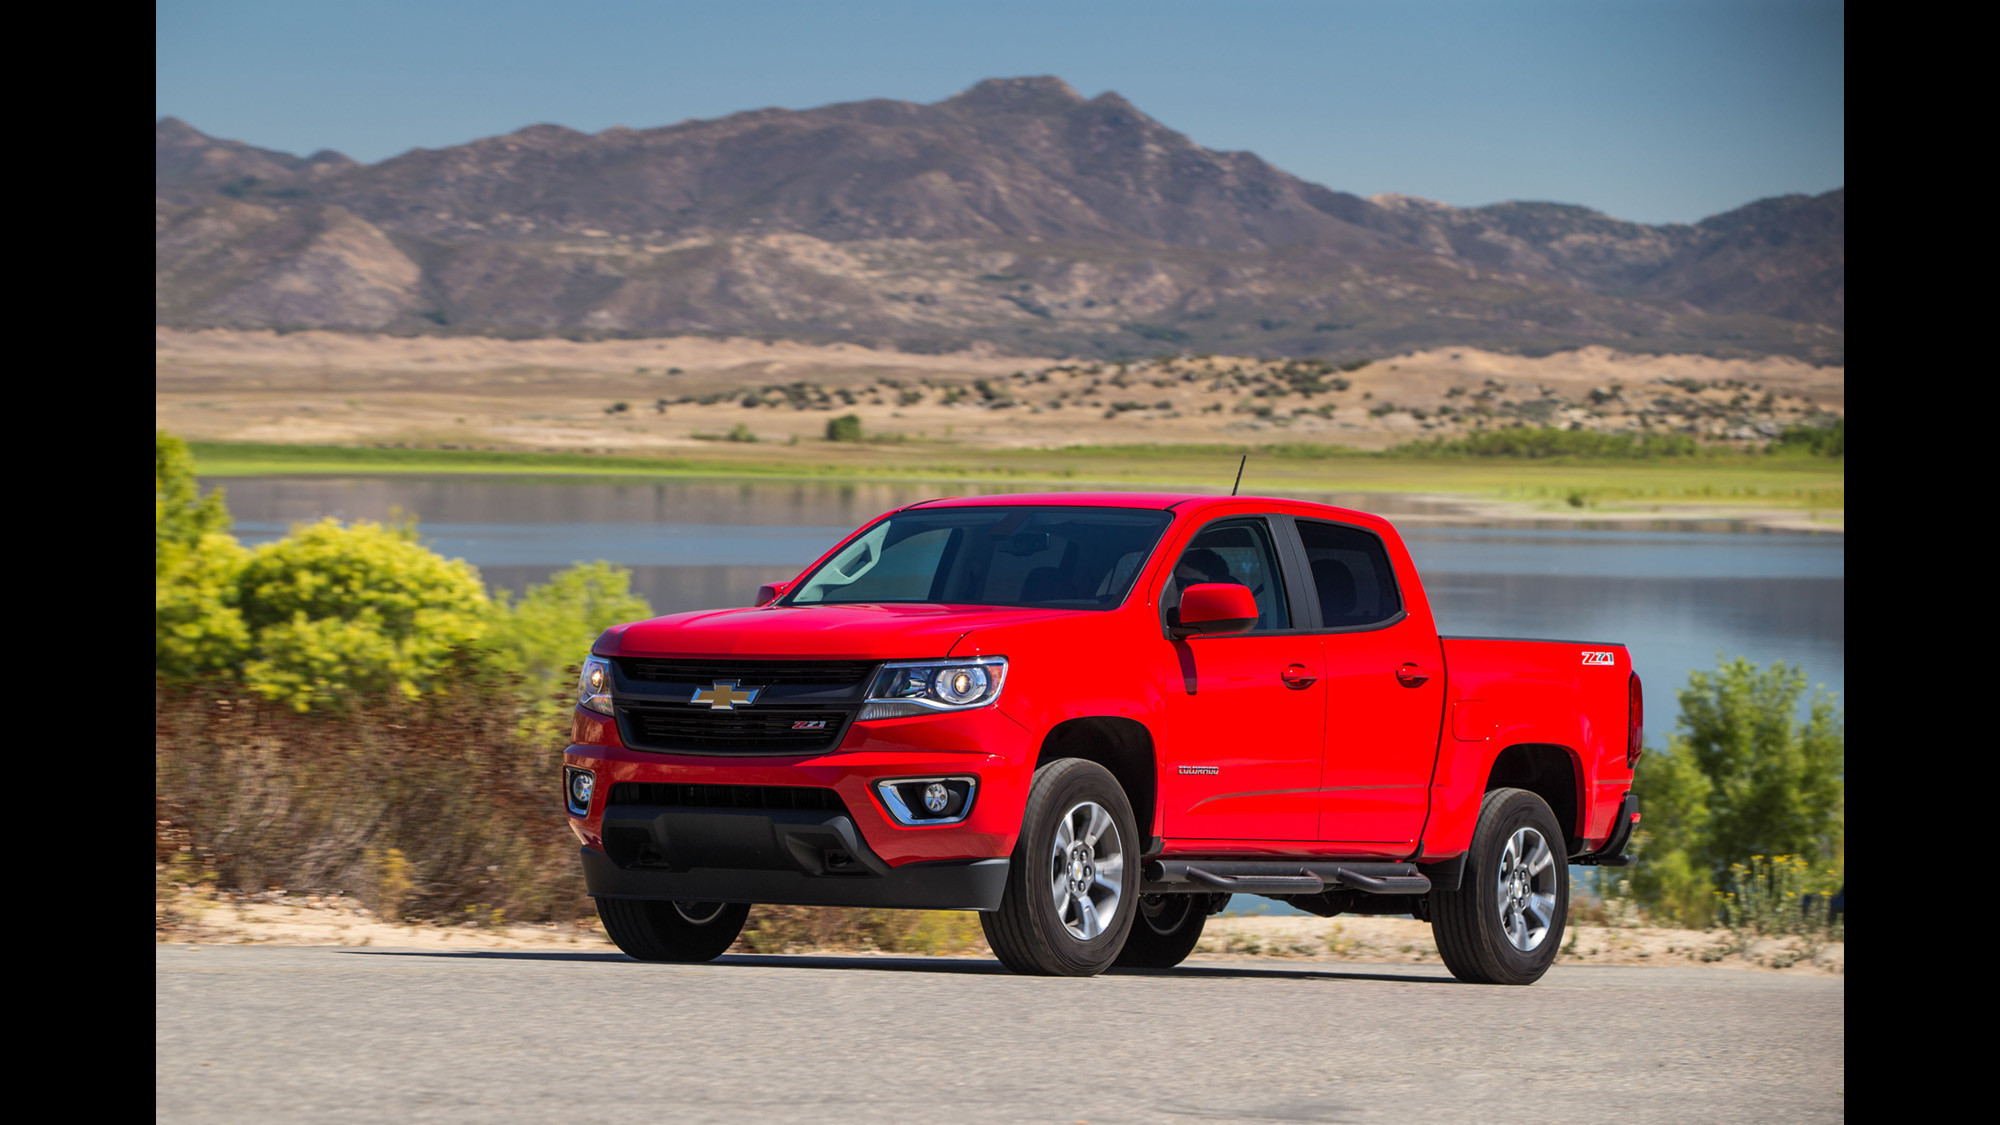 Review all new chevy colorado gmc canyon add vigor to mid size truck segment la times